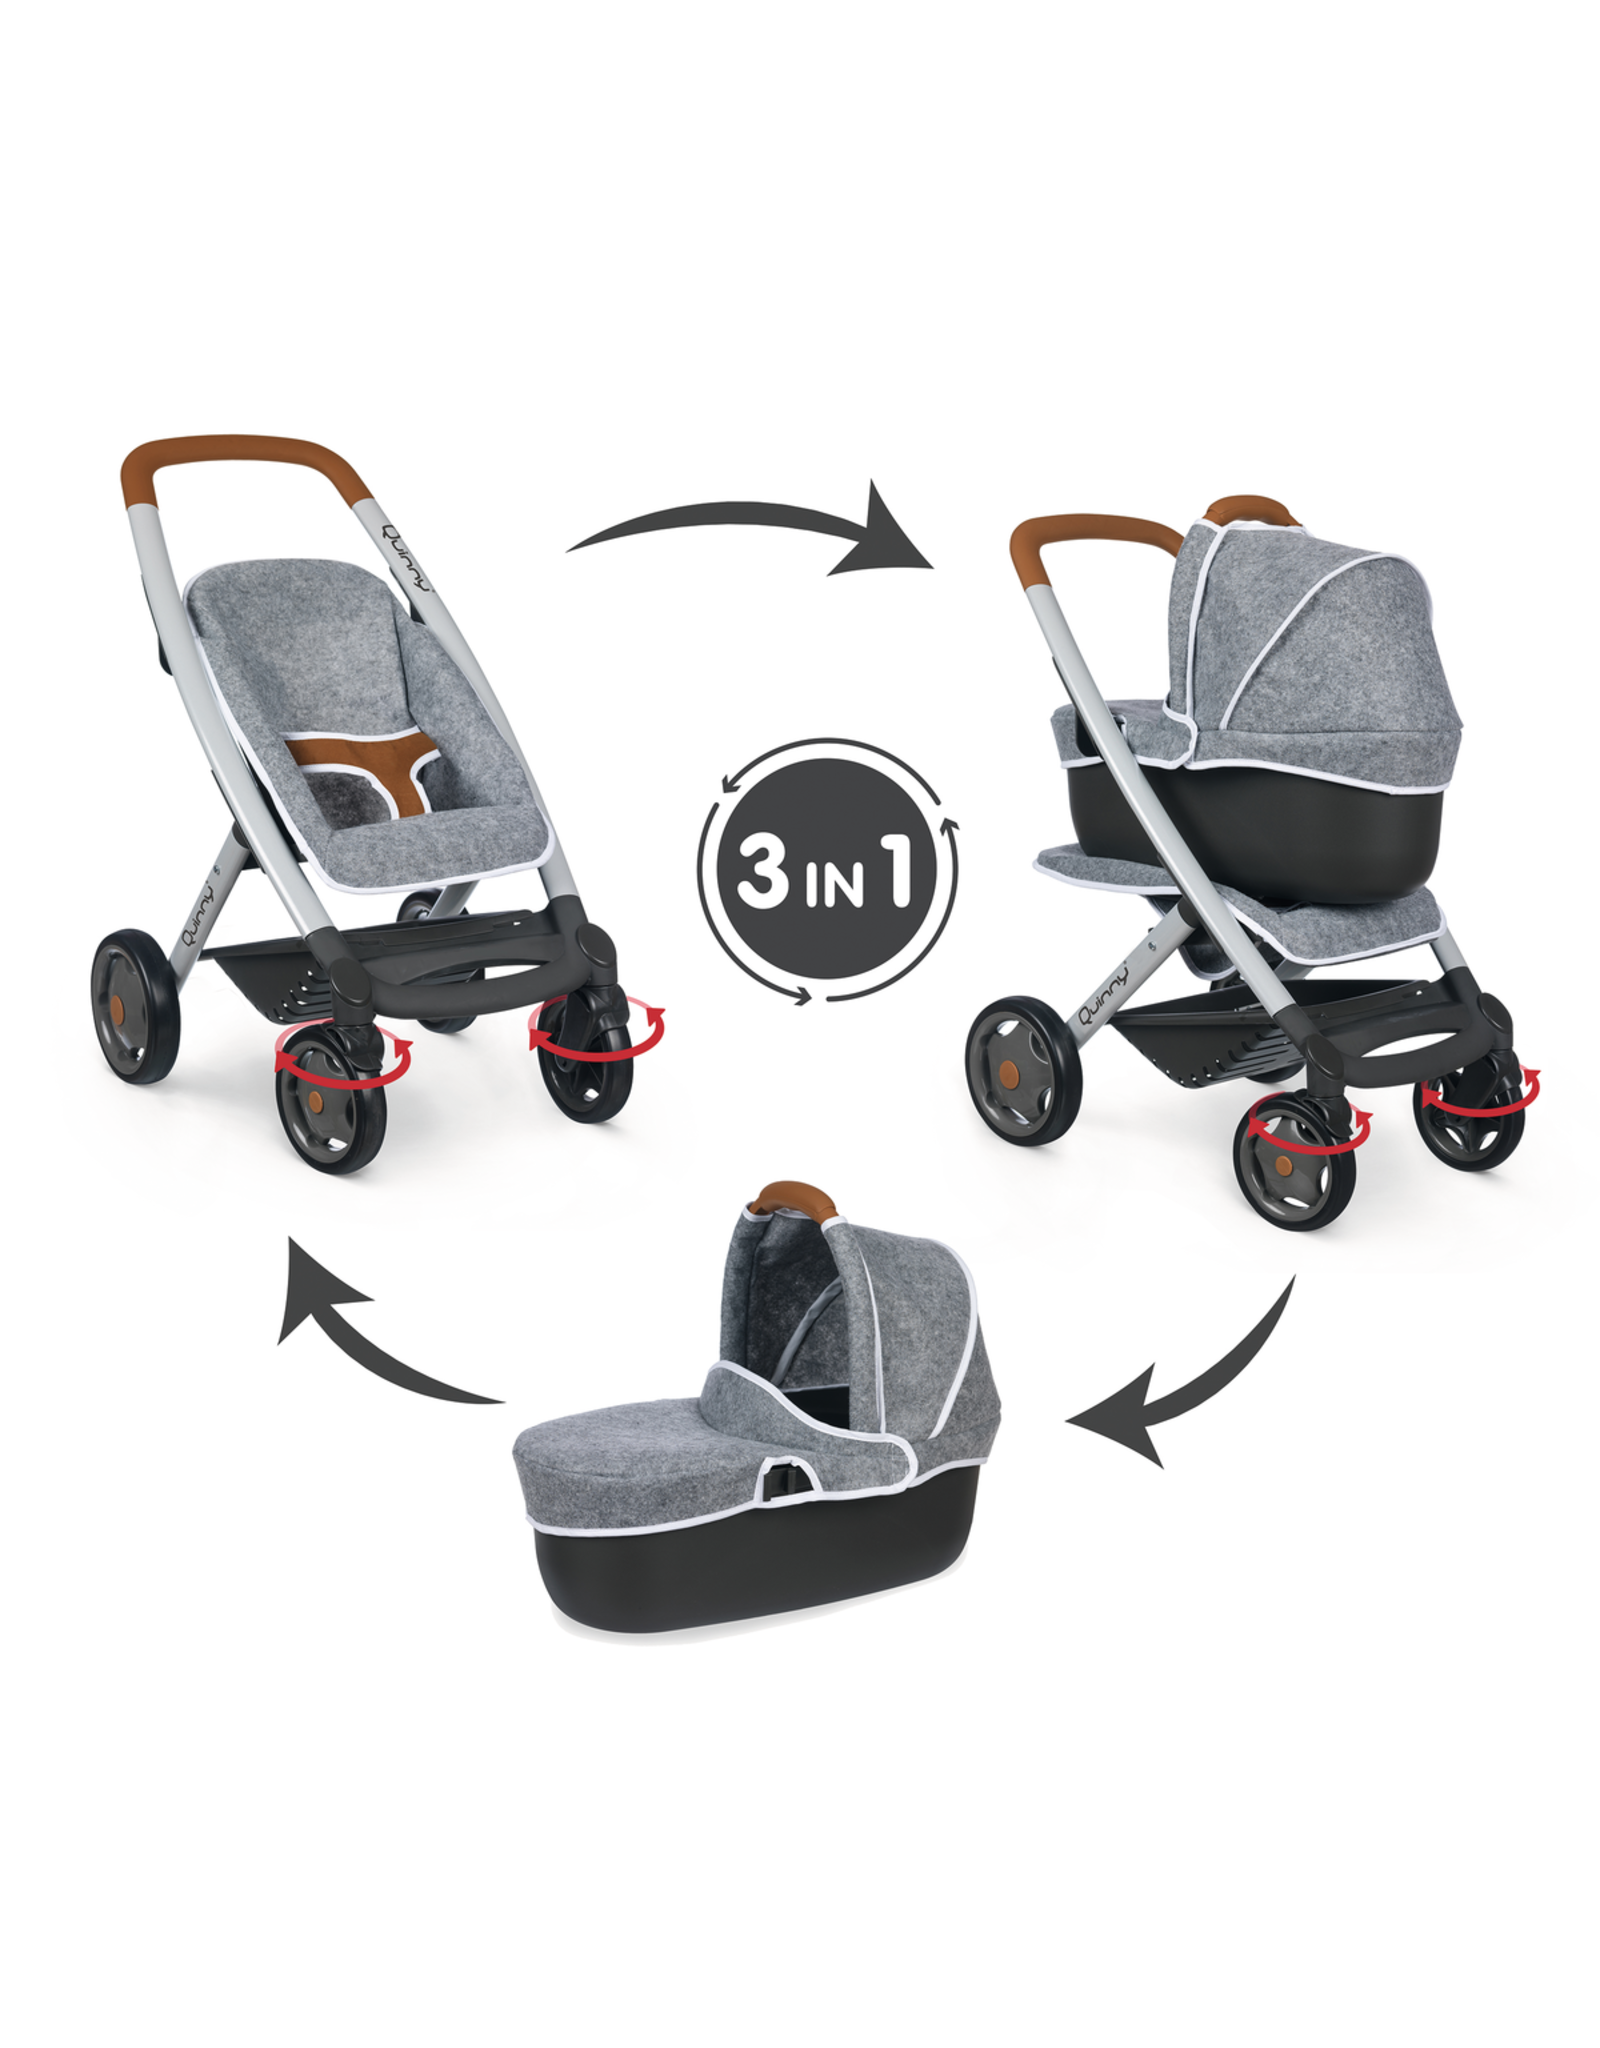 Smoby Smoby - Quinny 3-in-1 multifunctionele Poppenwagen - grijs